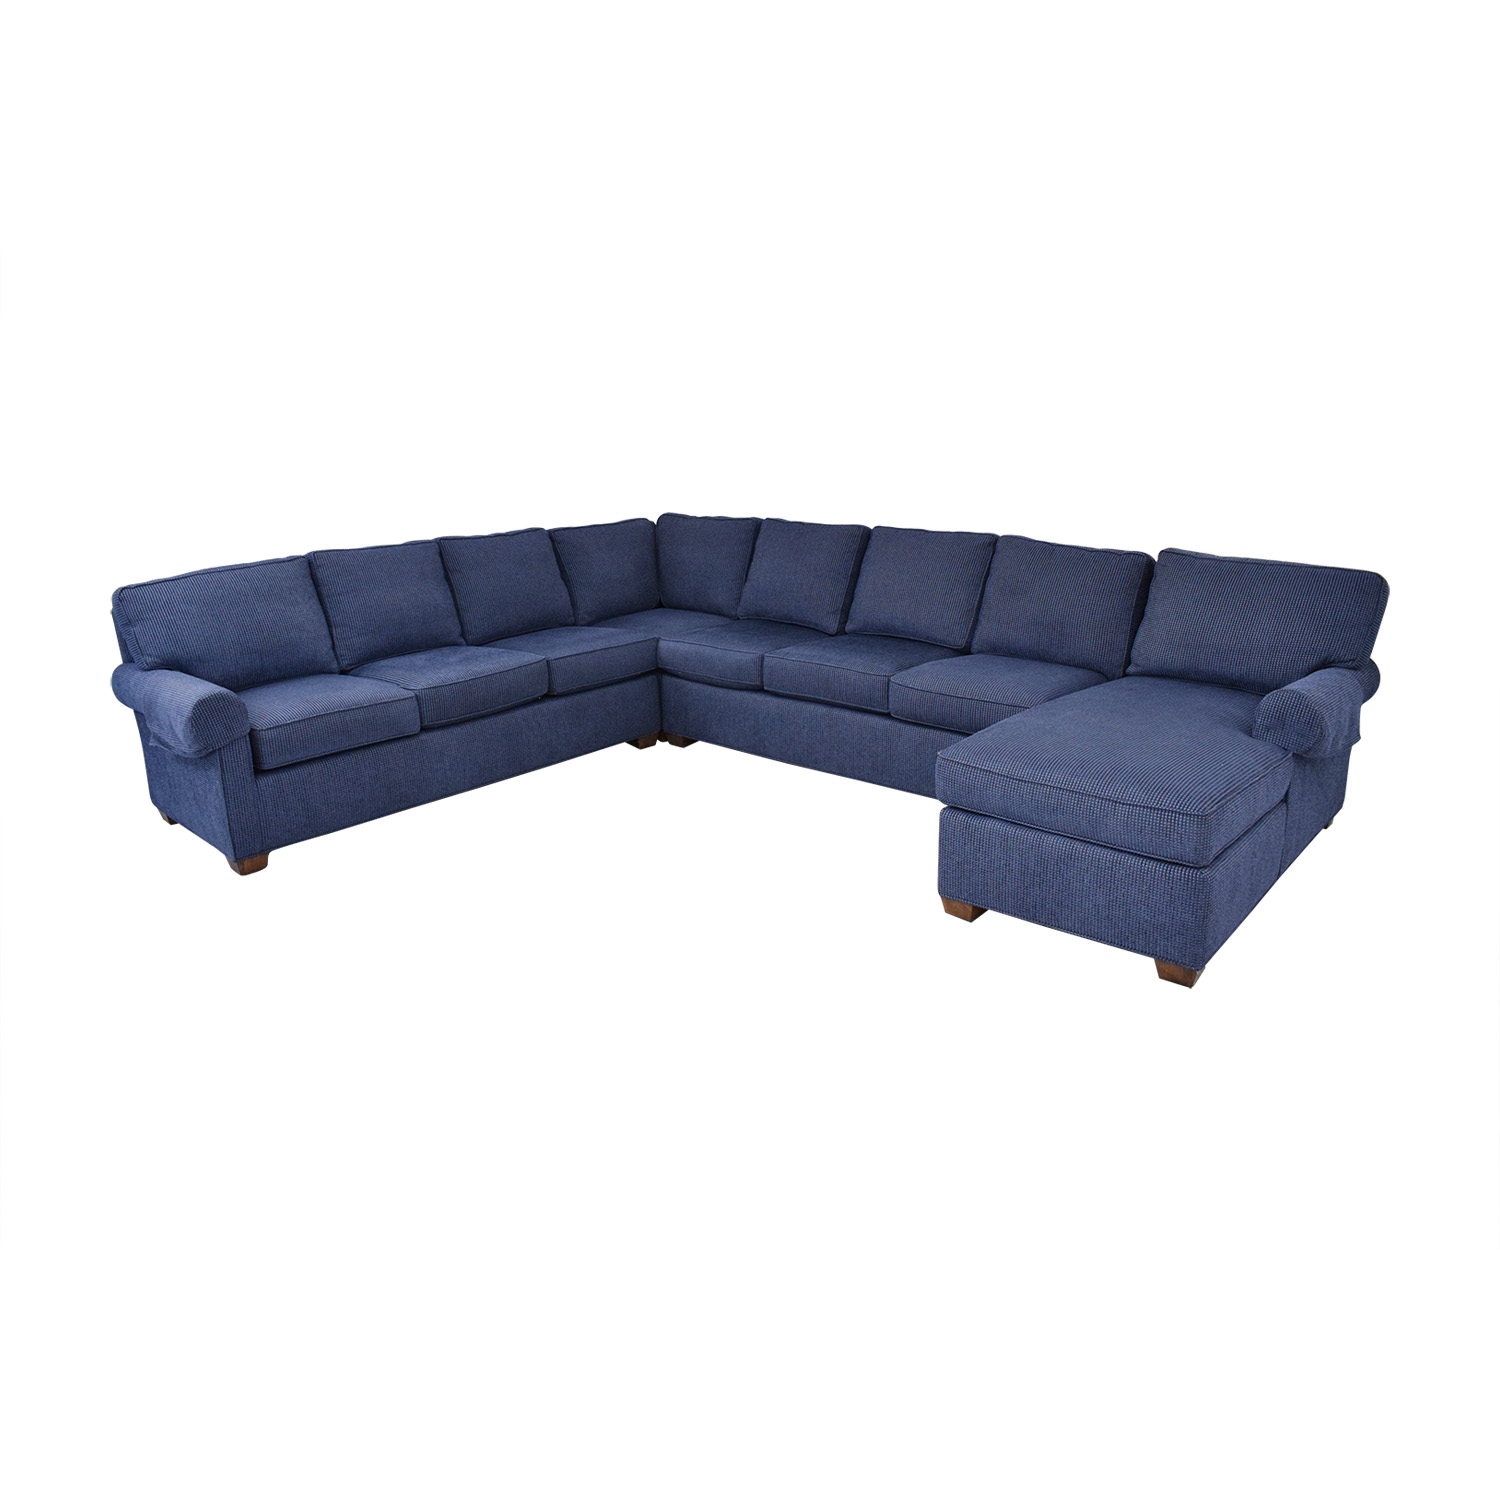 Wesley Hall Wellesley Hall Rolled Arm Sectional Sofa with Chaise nj